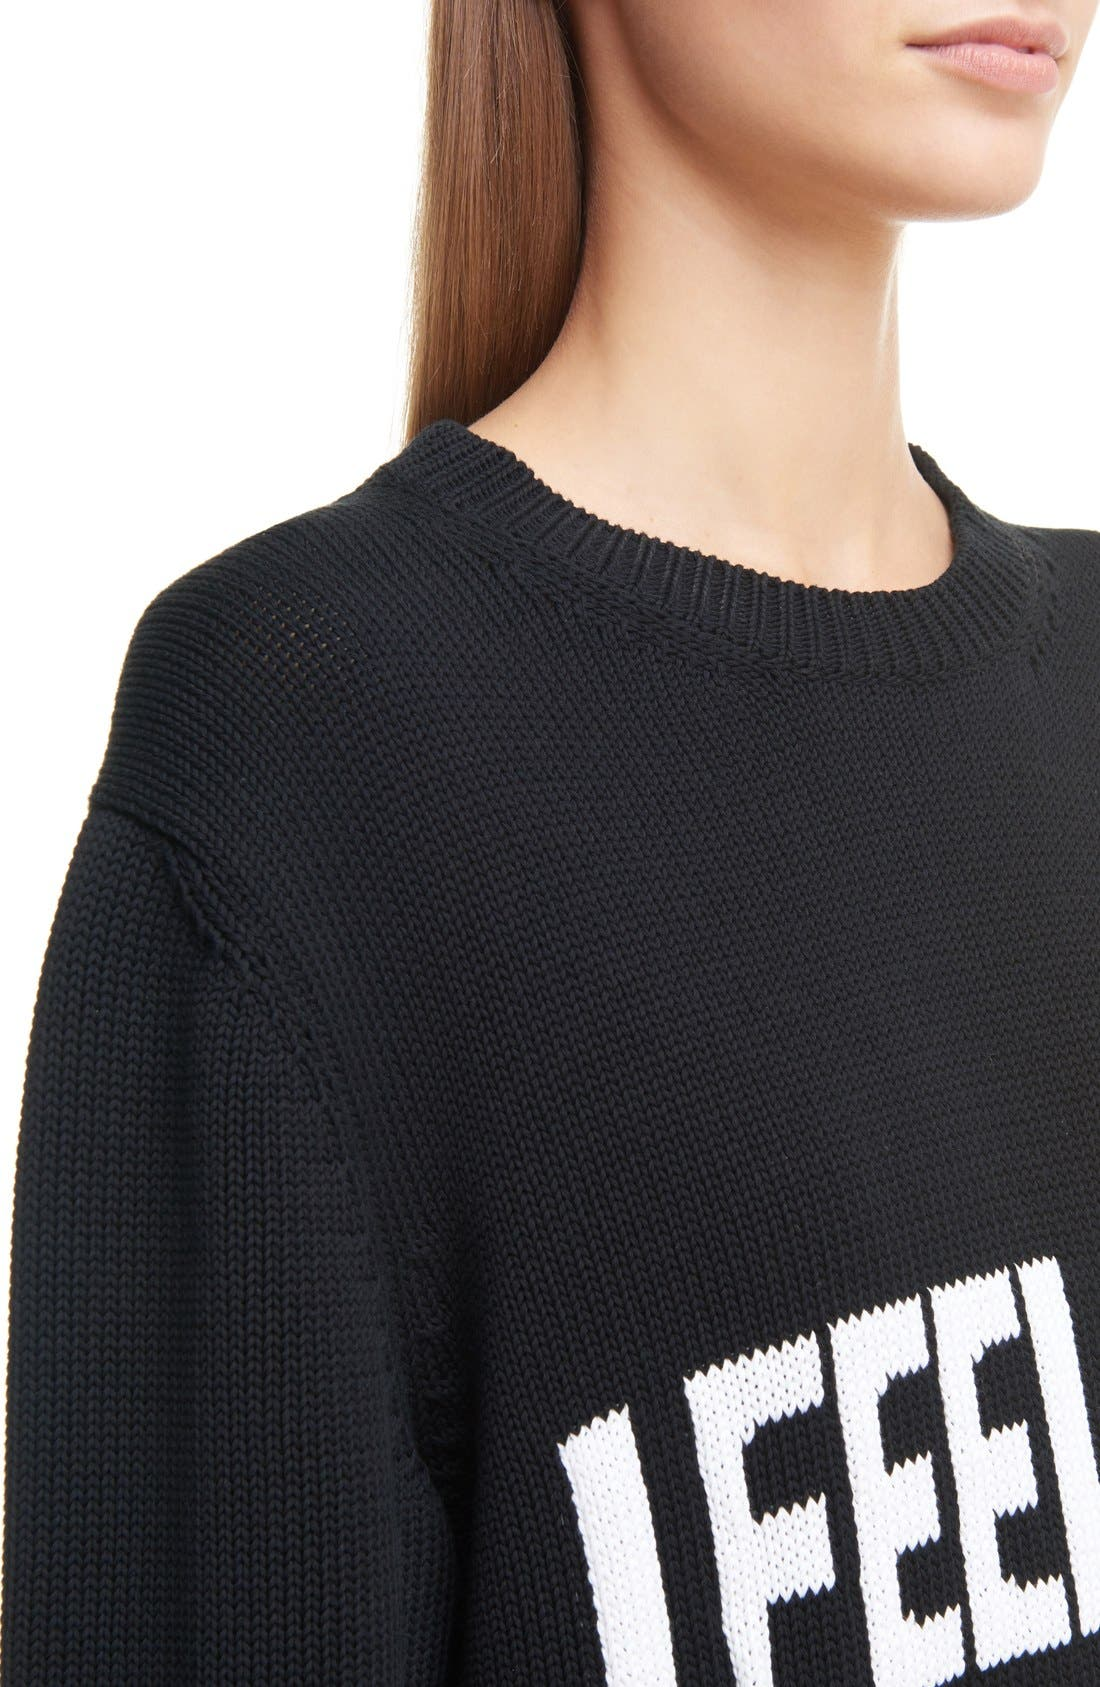 GIVENCHY,                             I Feel Love Cotton Sweater,                             Alternate thumbnail 5, color,                             004